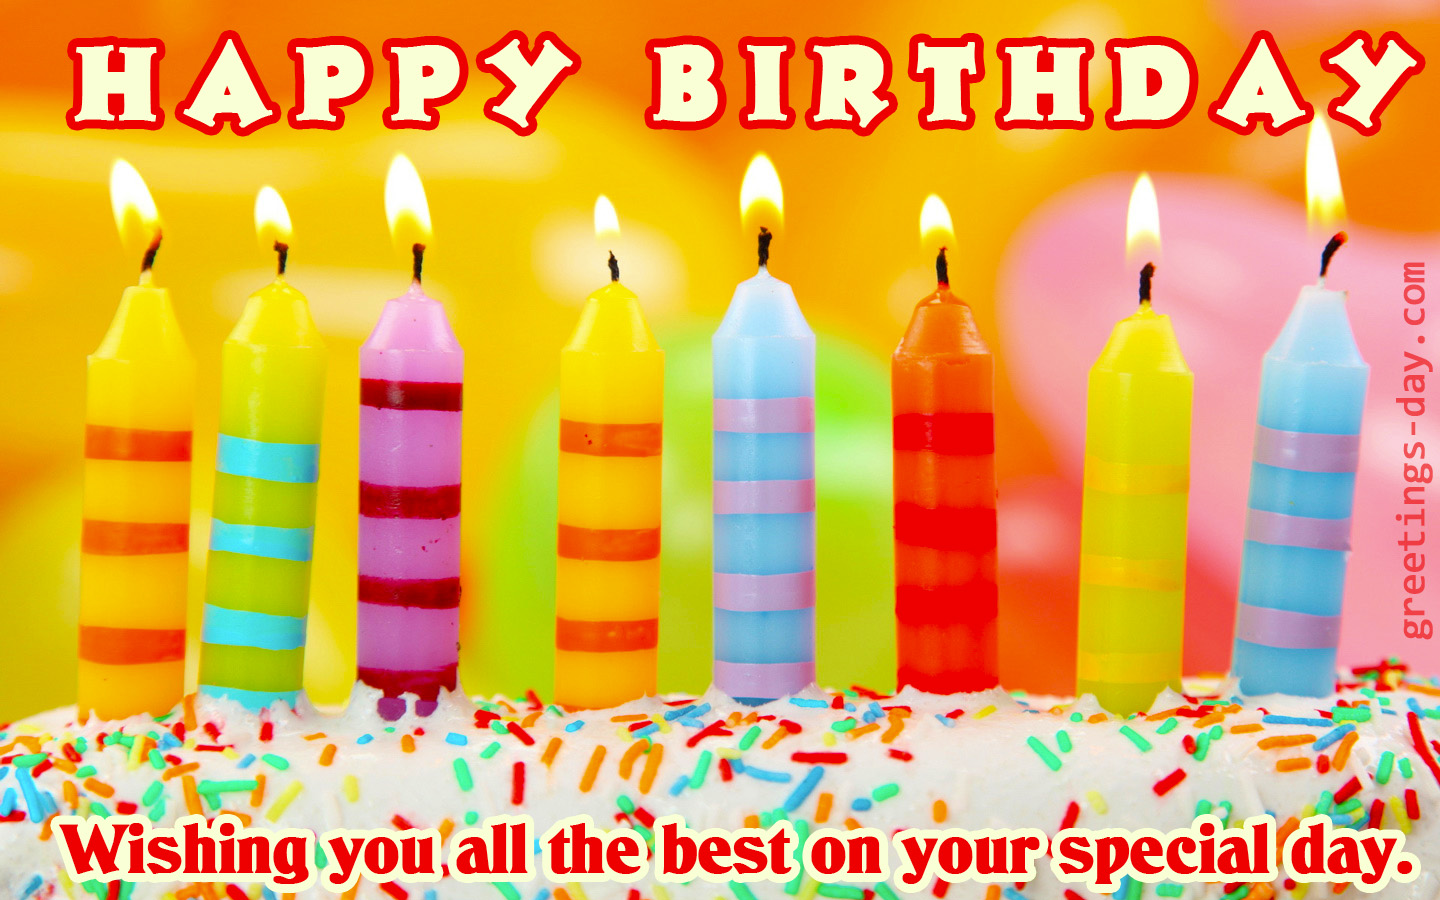 Happy Birthday for friends. Free Ecards and Pics.